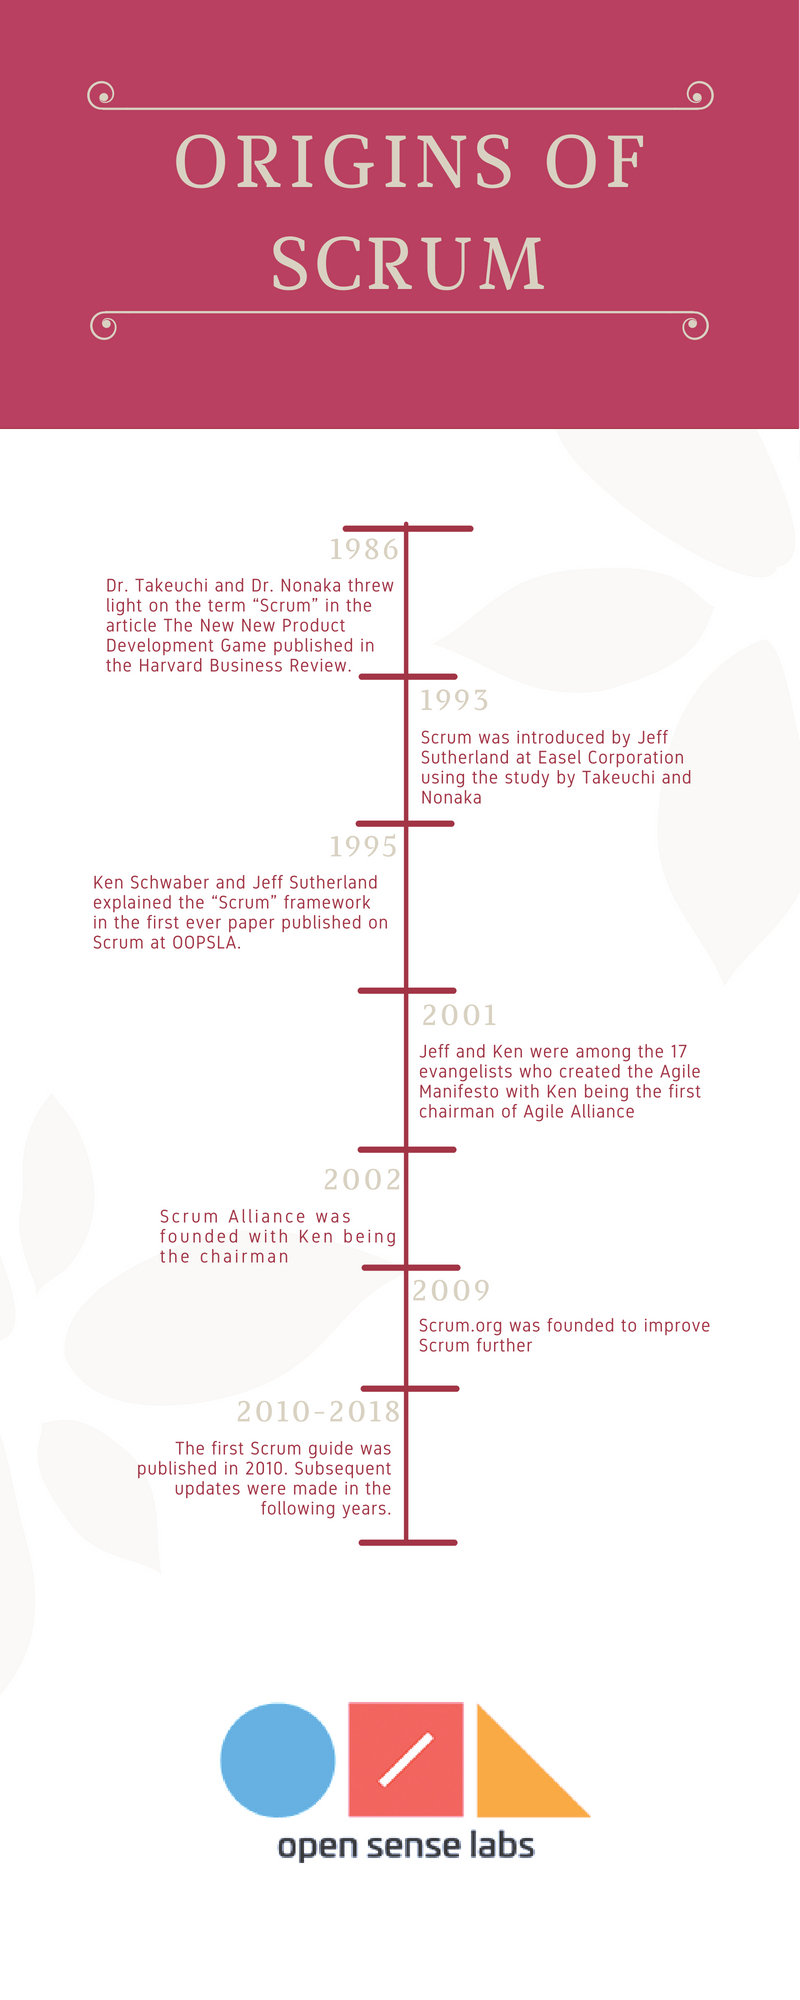 Infographic showing the timeline of origins of Scrum